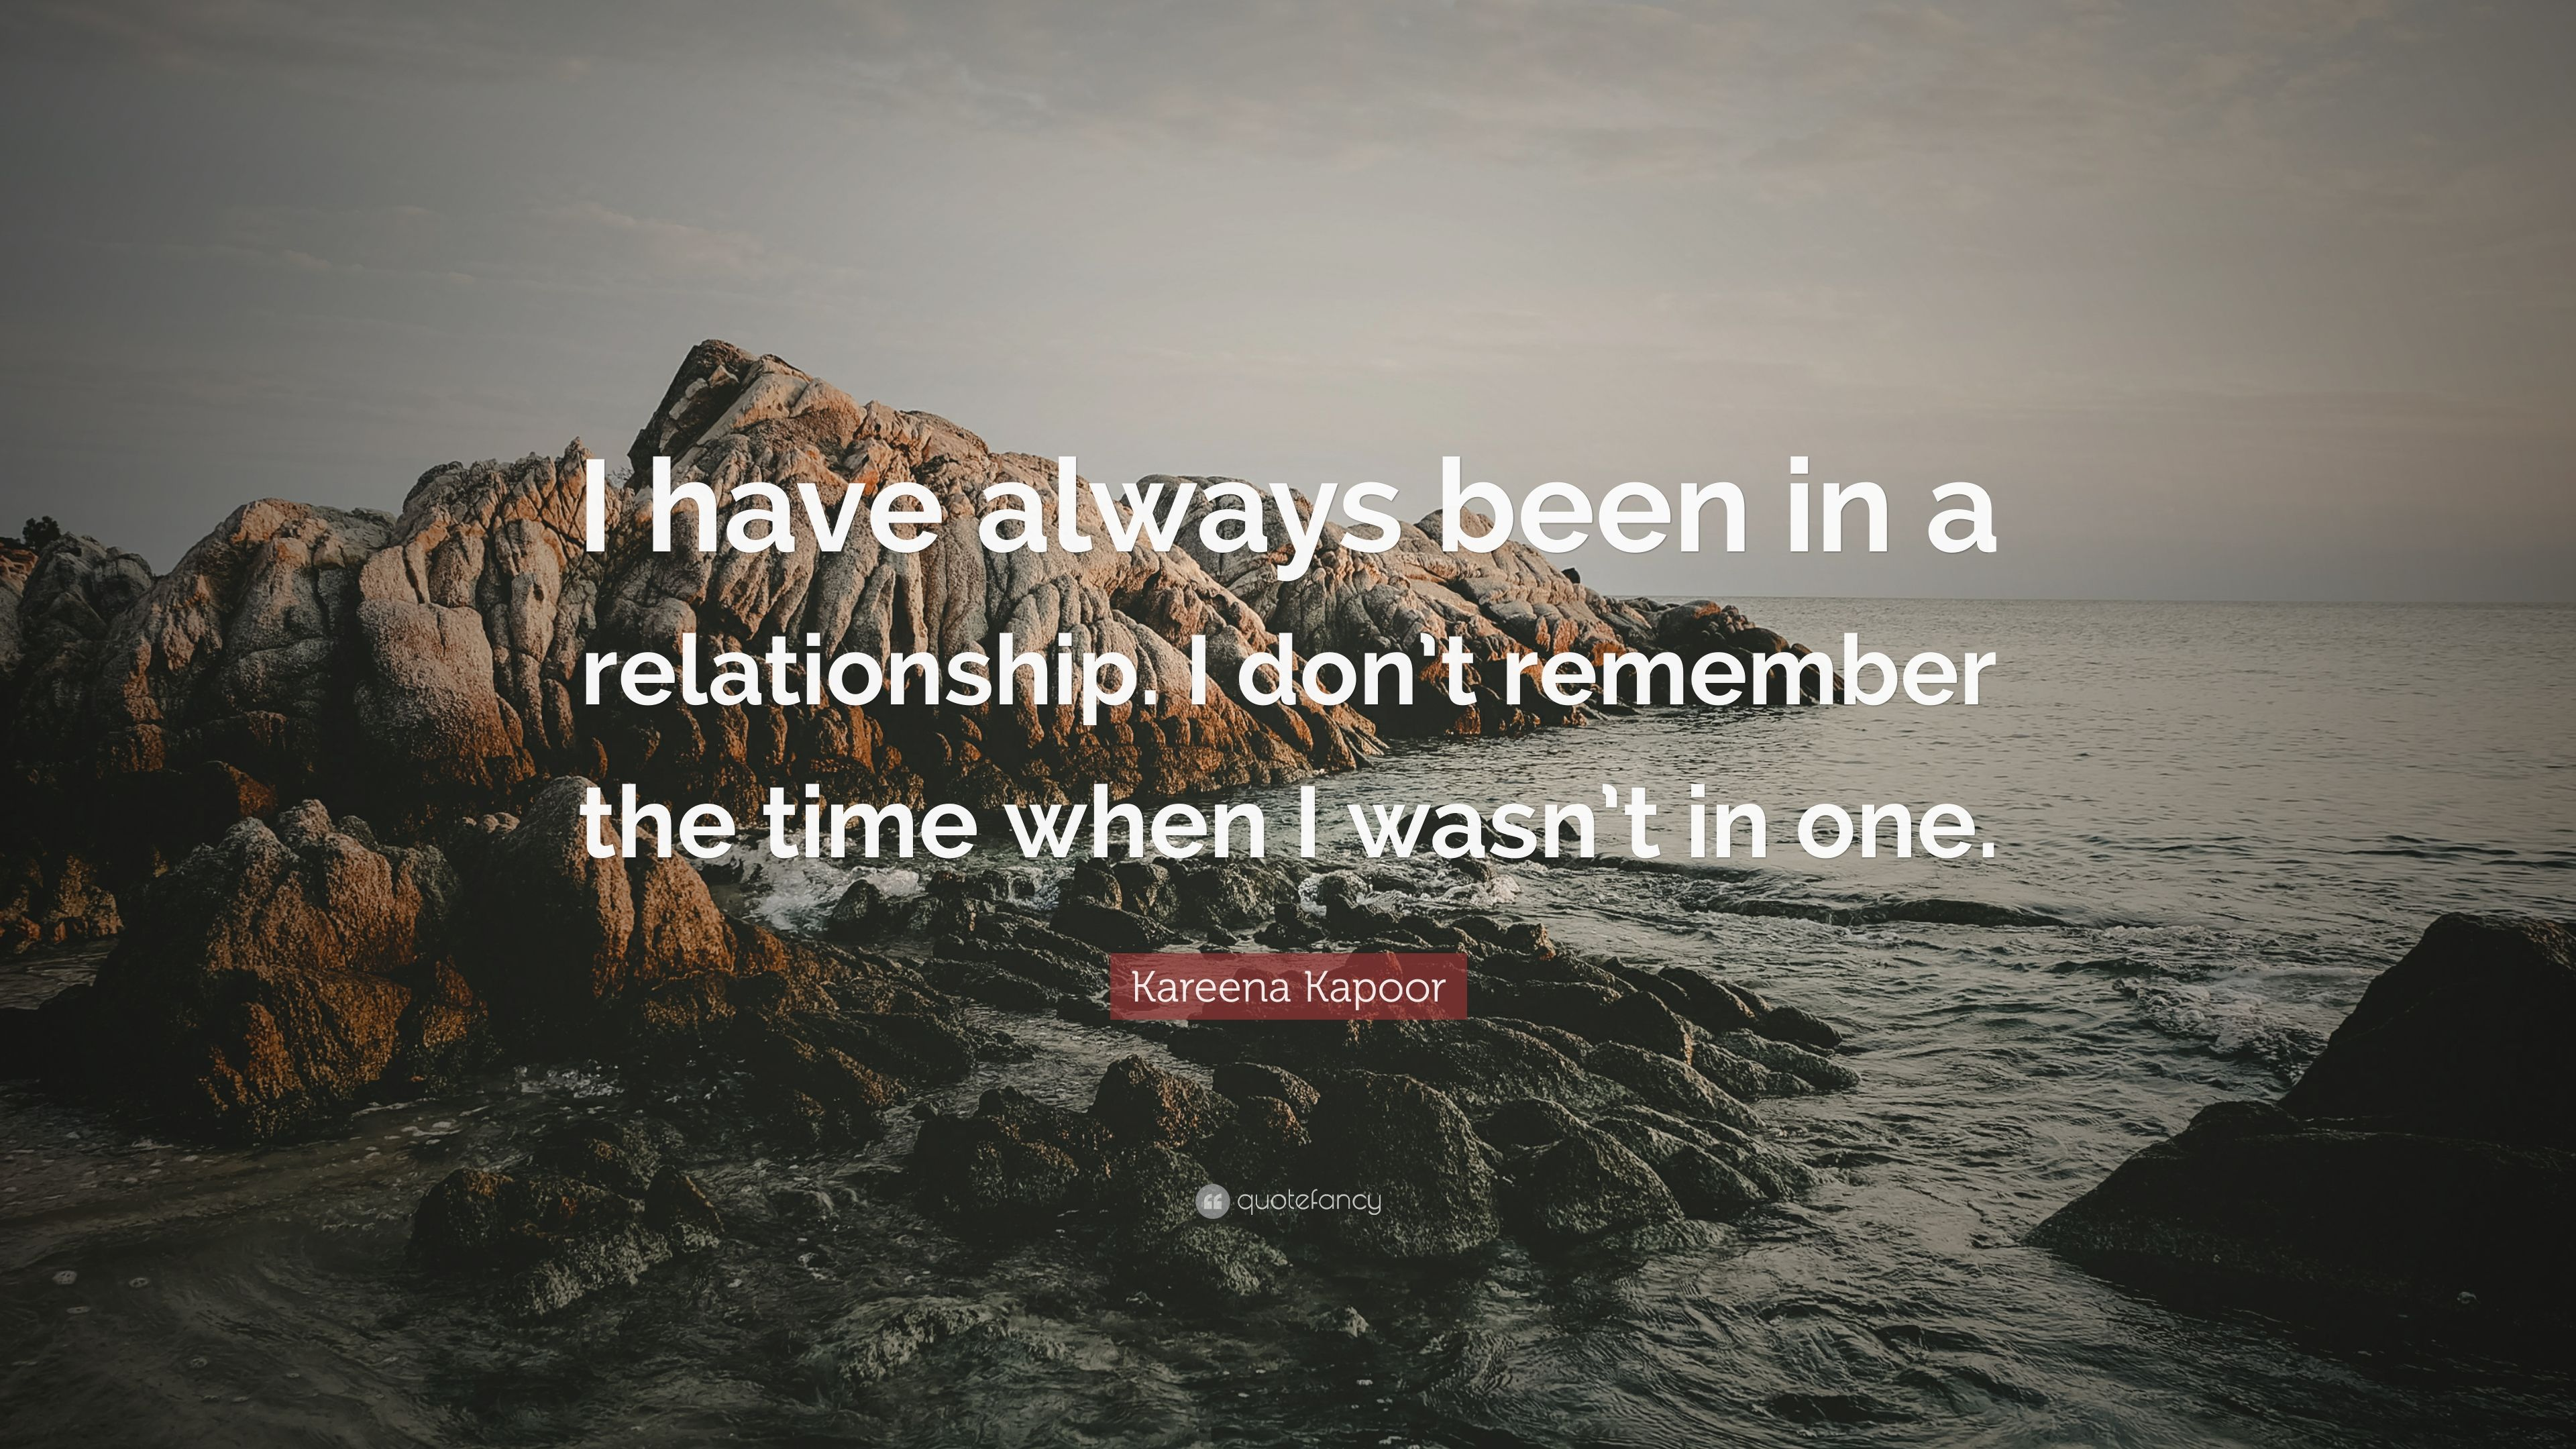 always been in a relationship